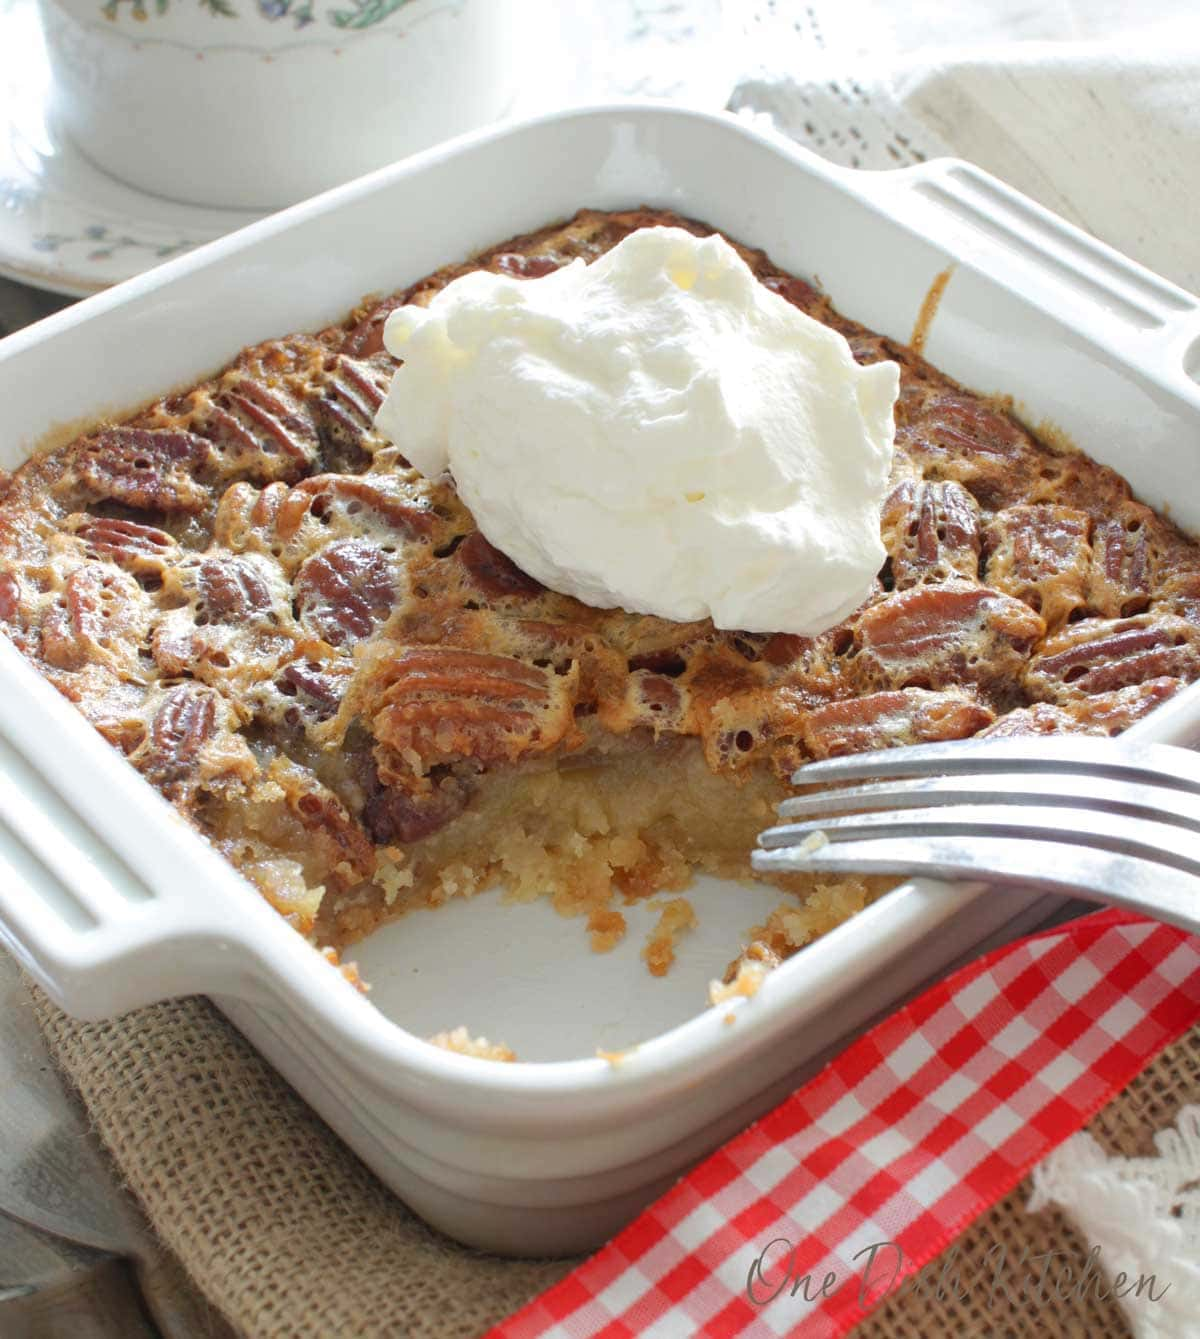 A single serving pecan pie topped with whipped cream and a bite taken out with a fork